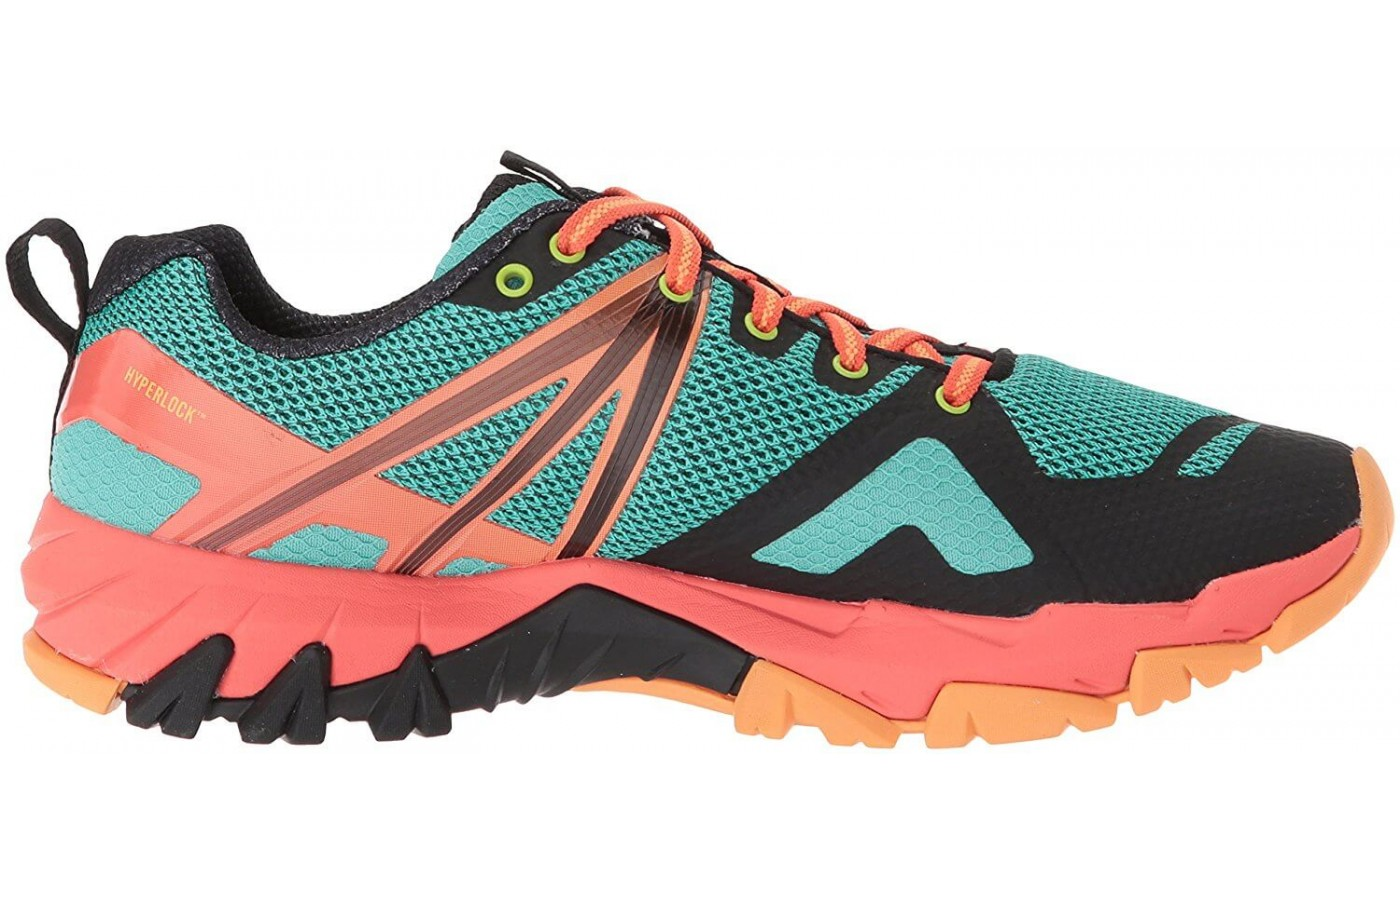 The Merrell MQM Flex features their patented Flex Connect midsole